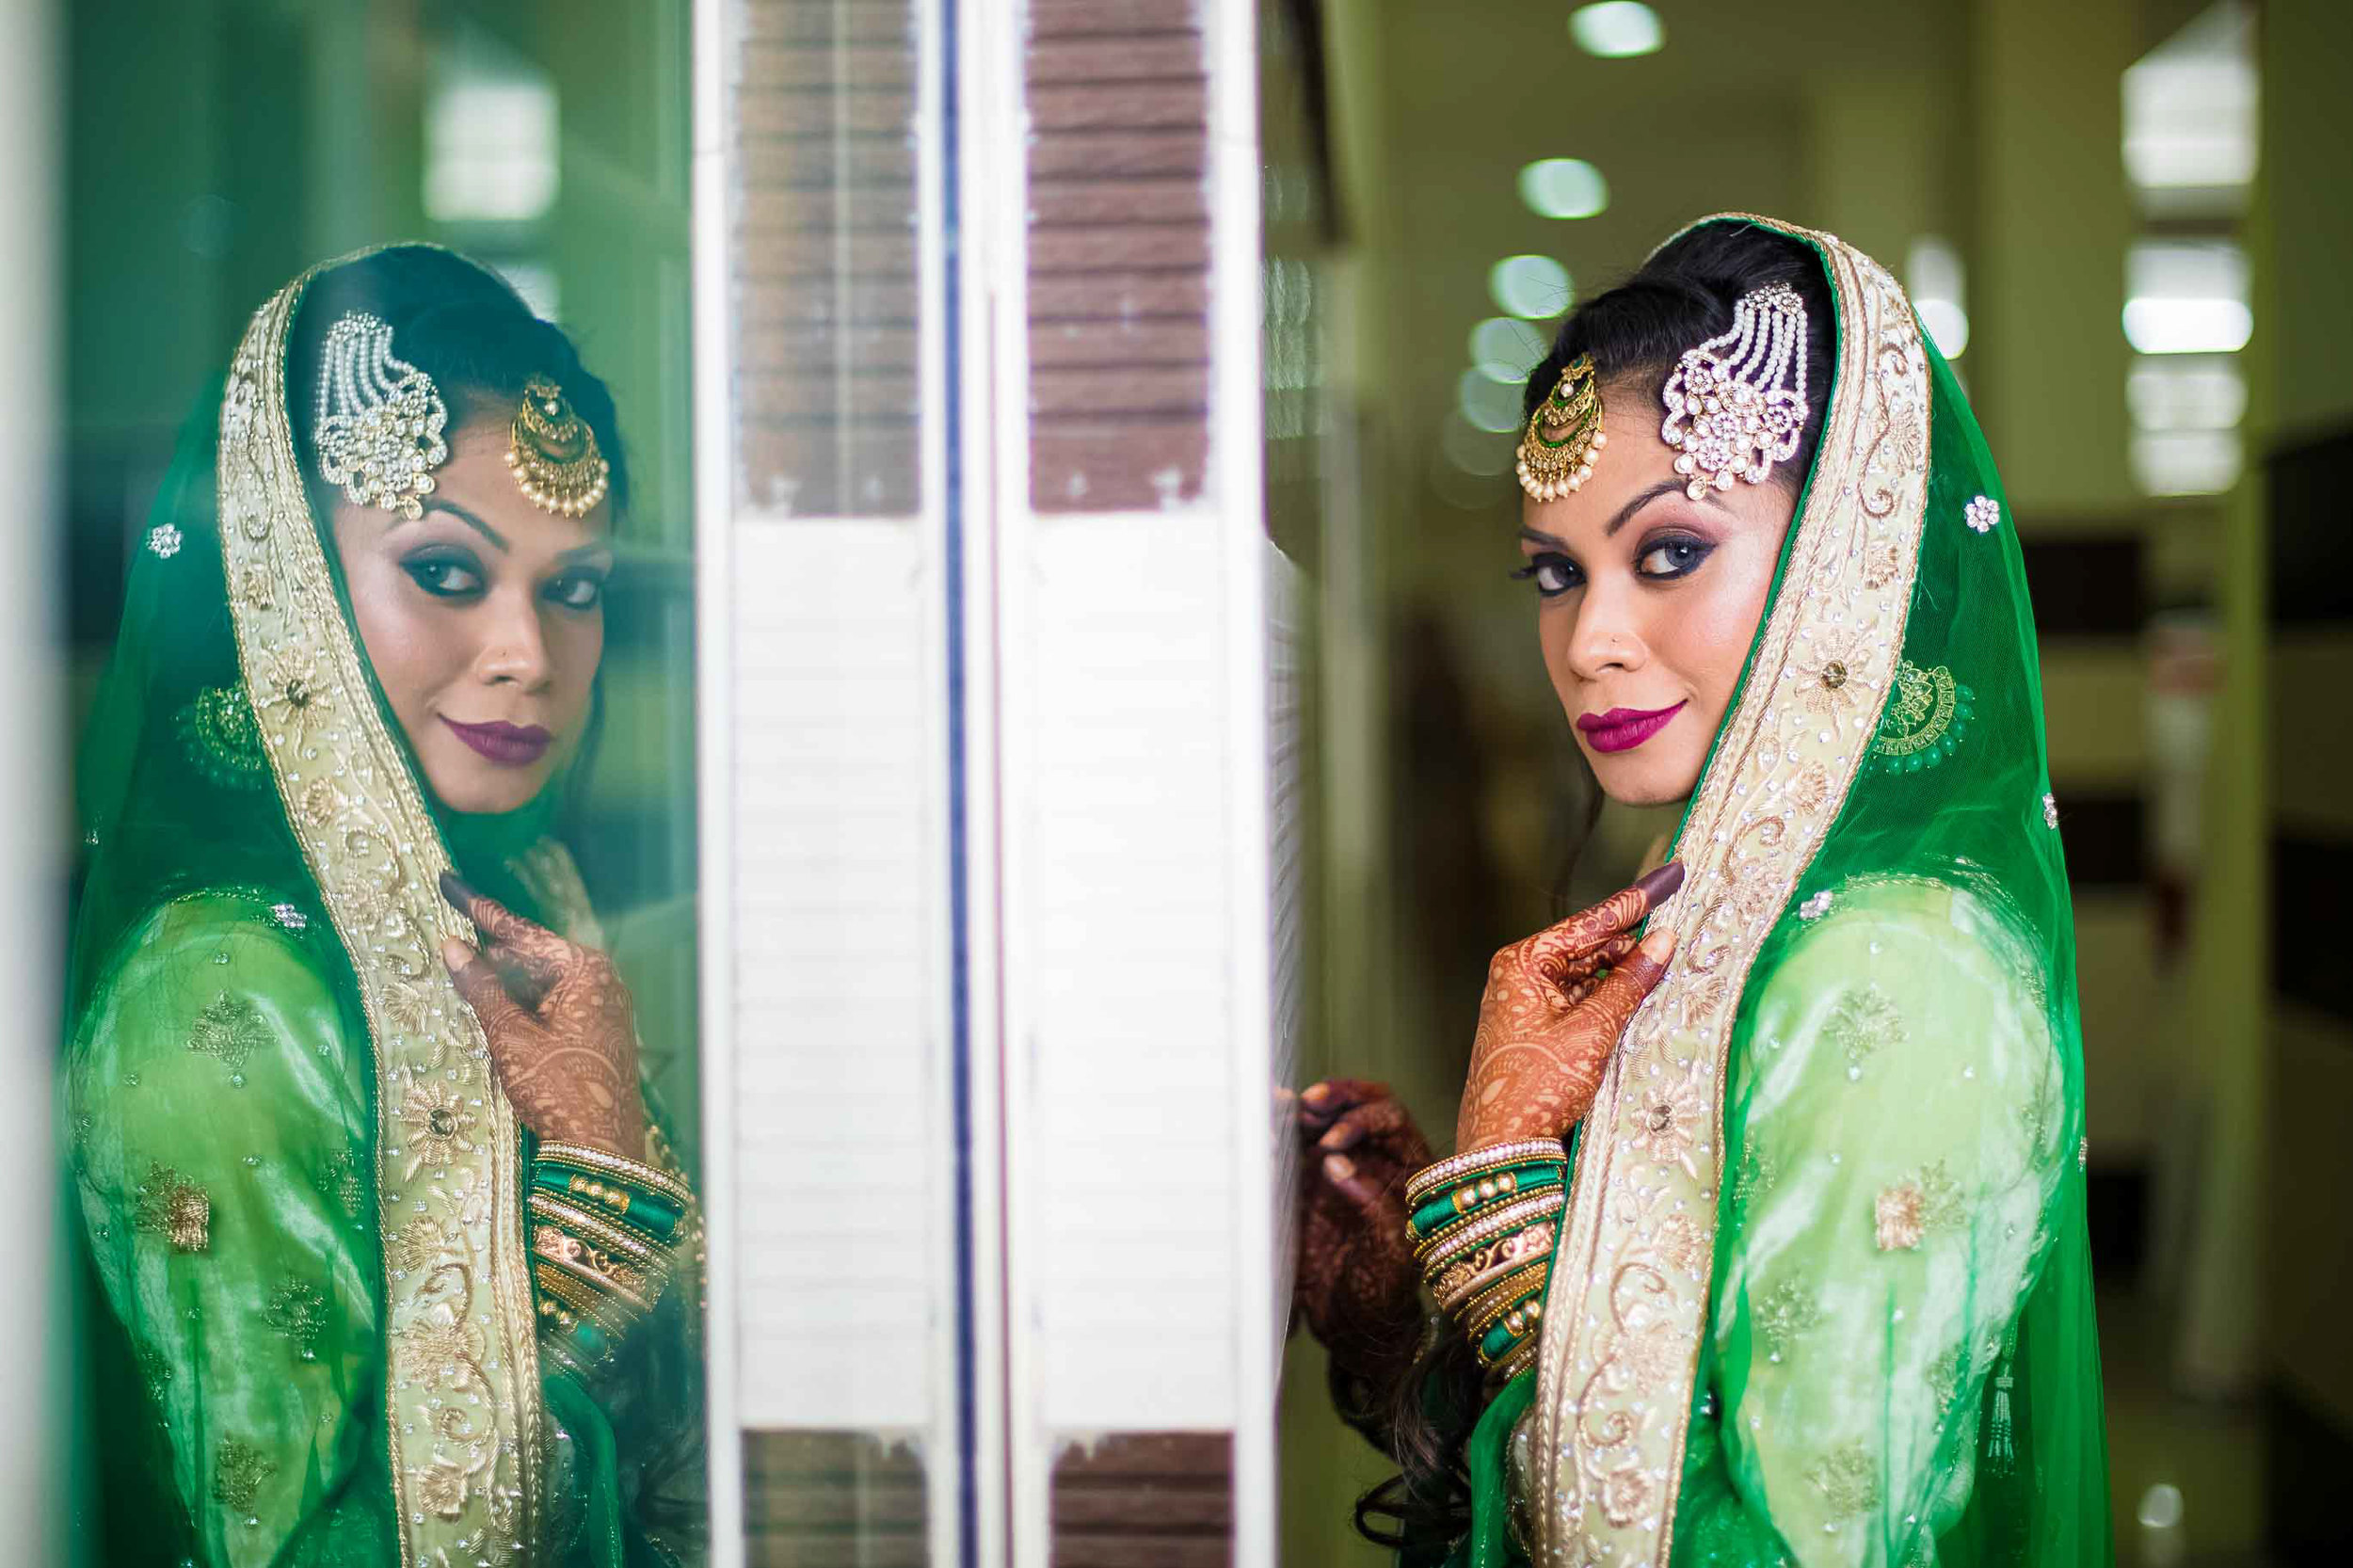 Pixel-Chronicles-Meraj-Yousuf-Candid-Wedding-Documentary-Photography-Beautiful-Bride-Best-Portrait-Muslim-Wedding-Perfect-Bride-30.jpg